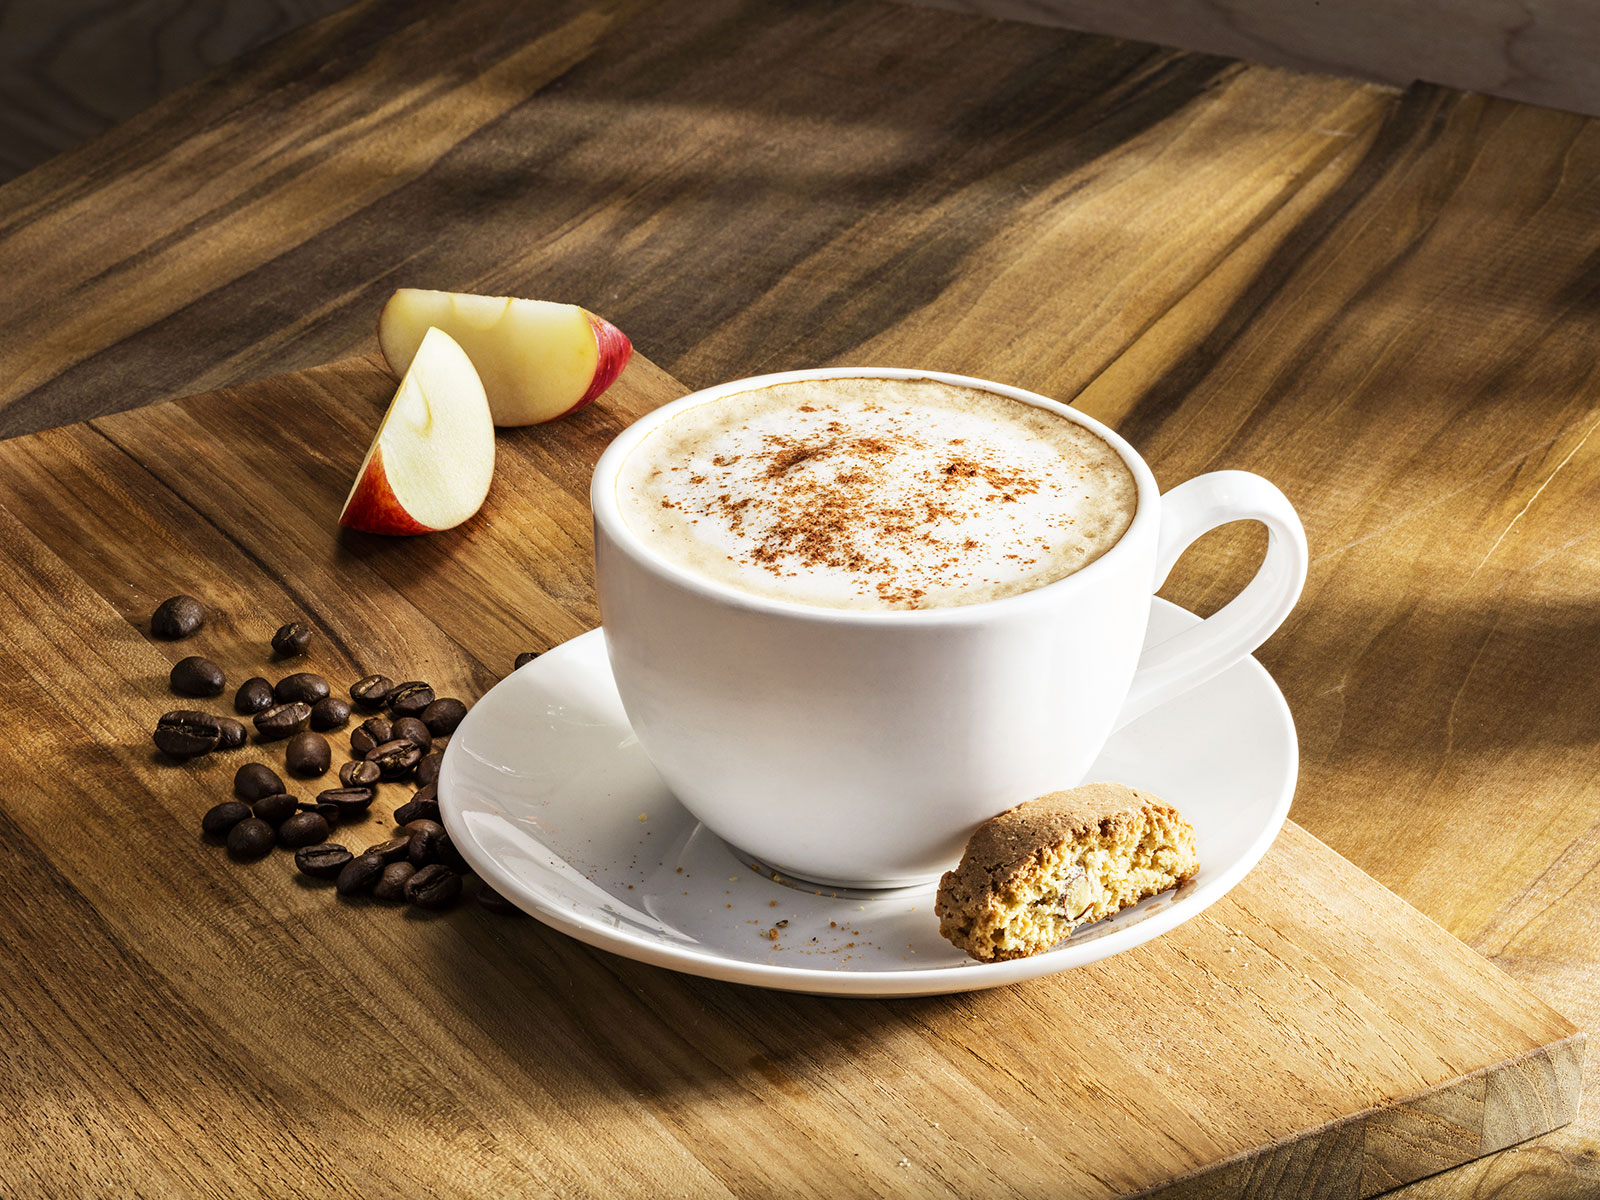 Olive Garden Introduces a Caramel Apple Butter Latte